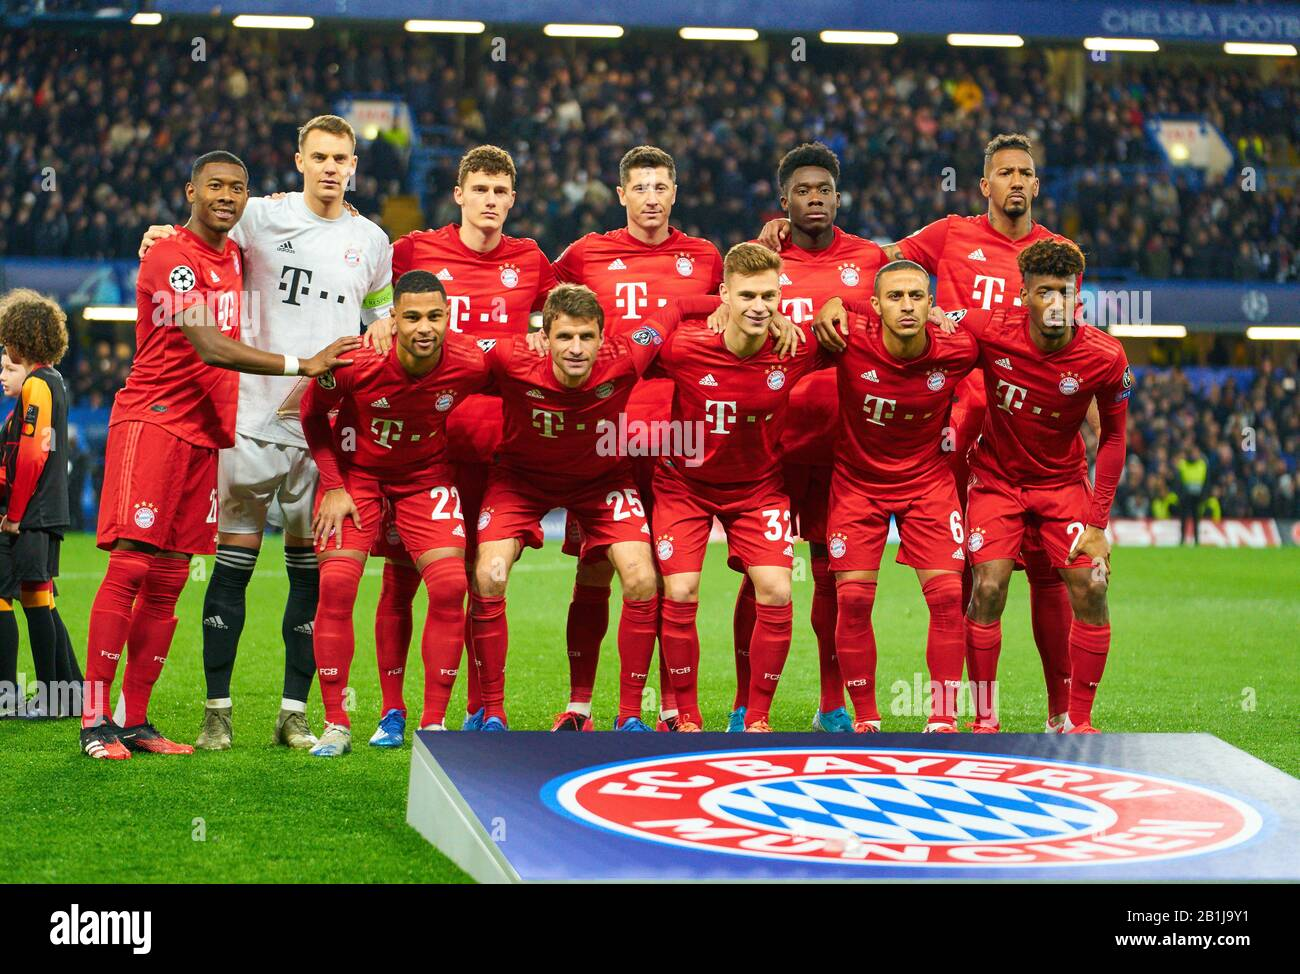 Bayern Munich High Resolution Stock Photography and Images - Alamy